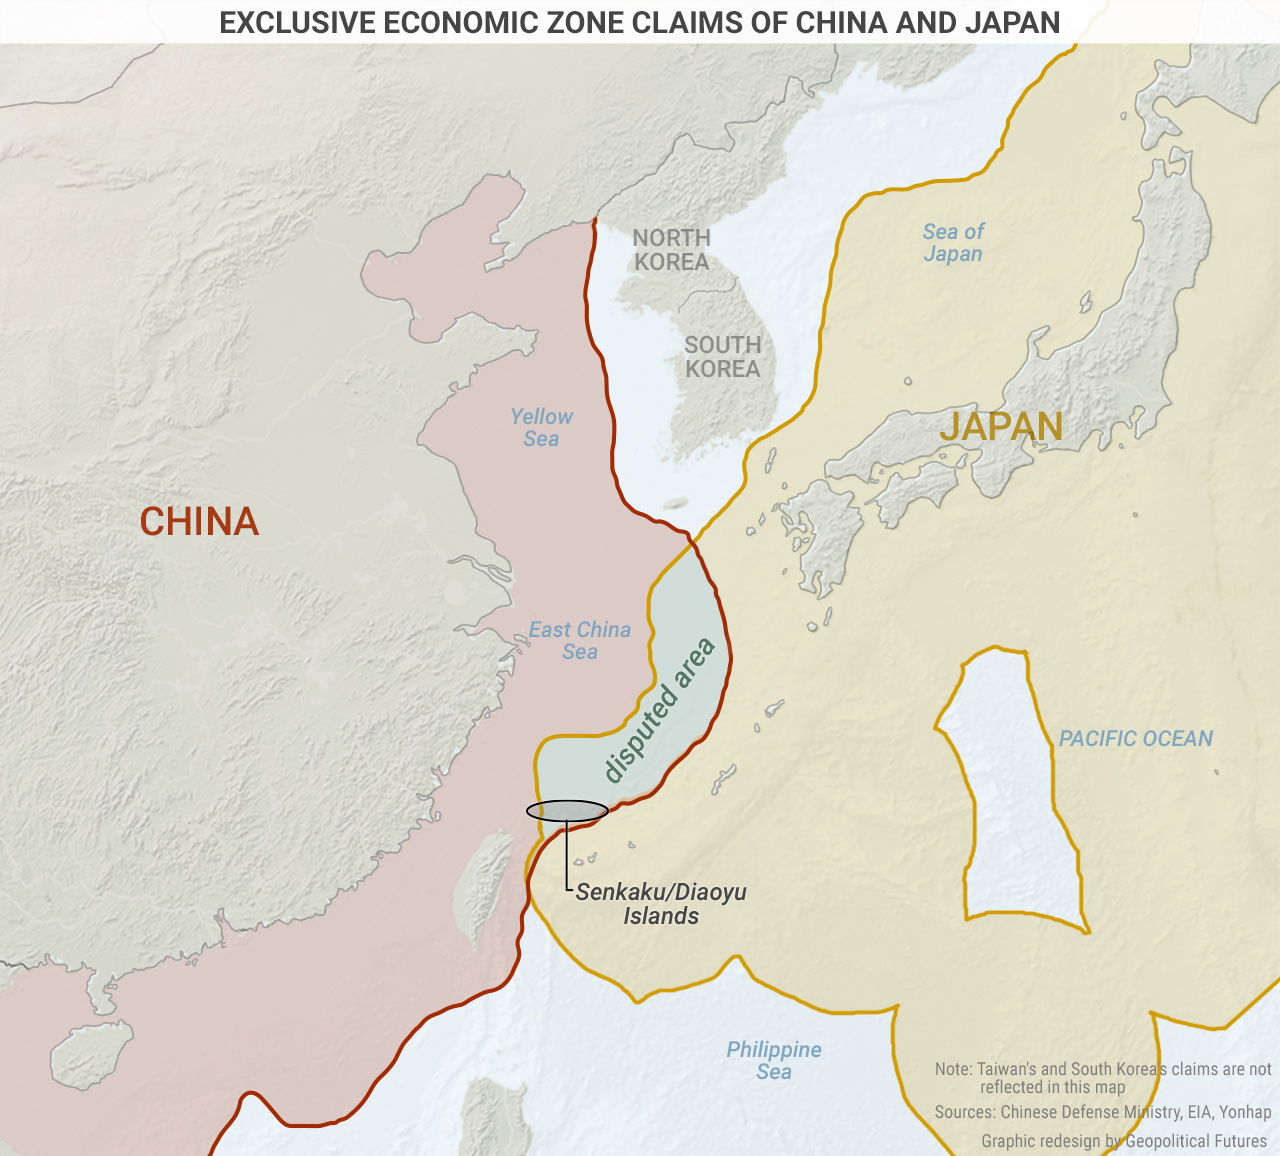 Exclusive Economic Zone Claims of China and Japan